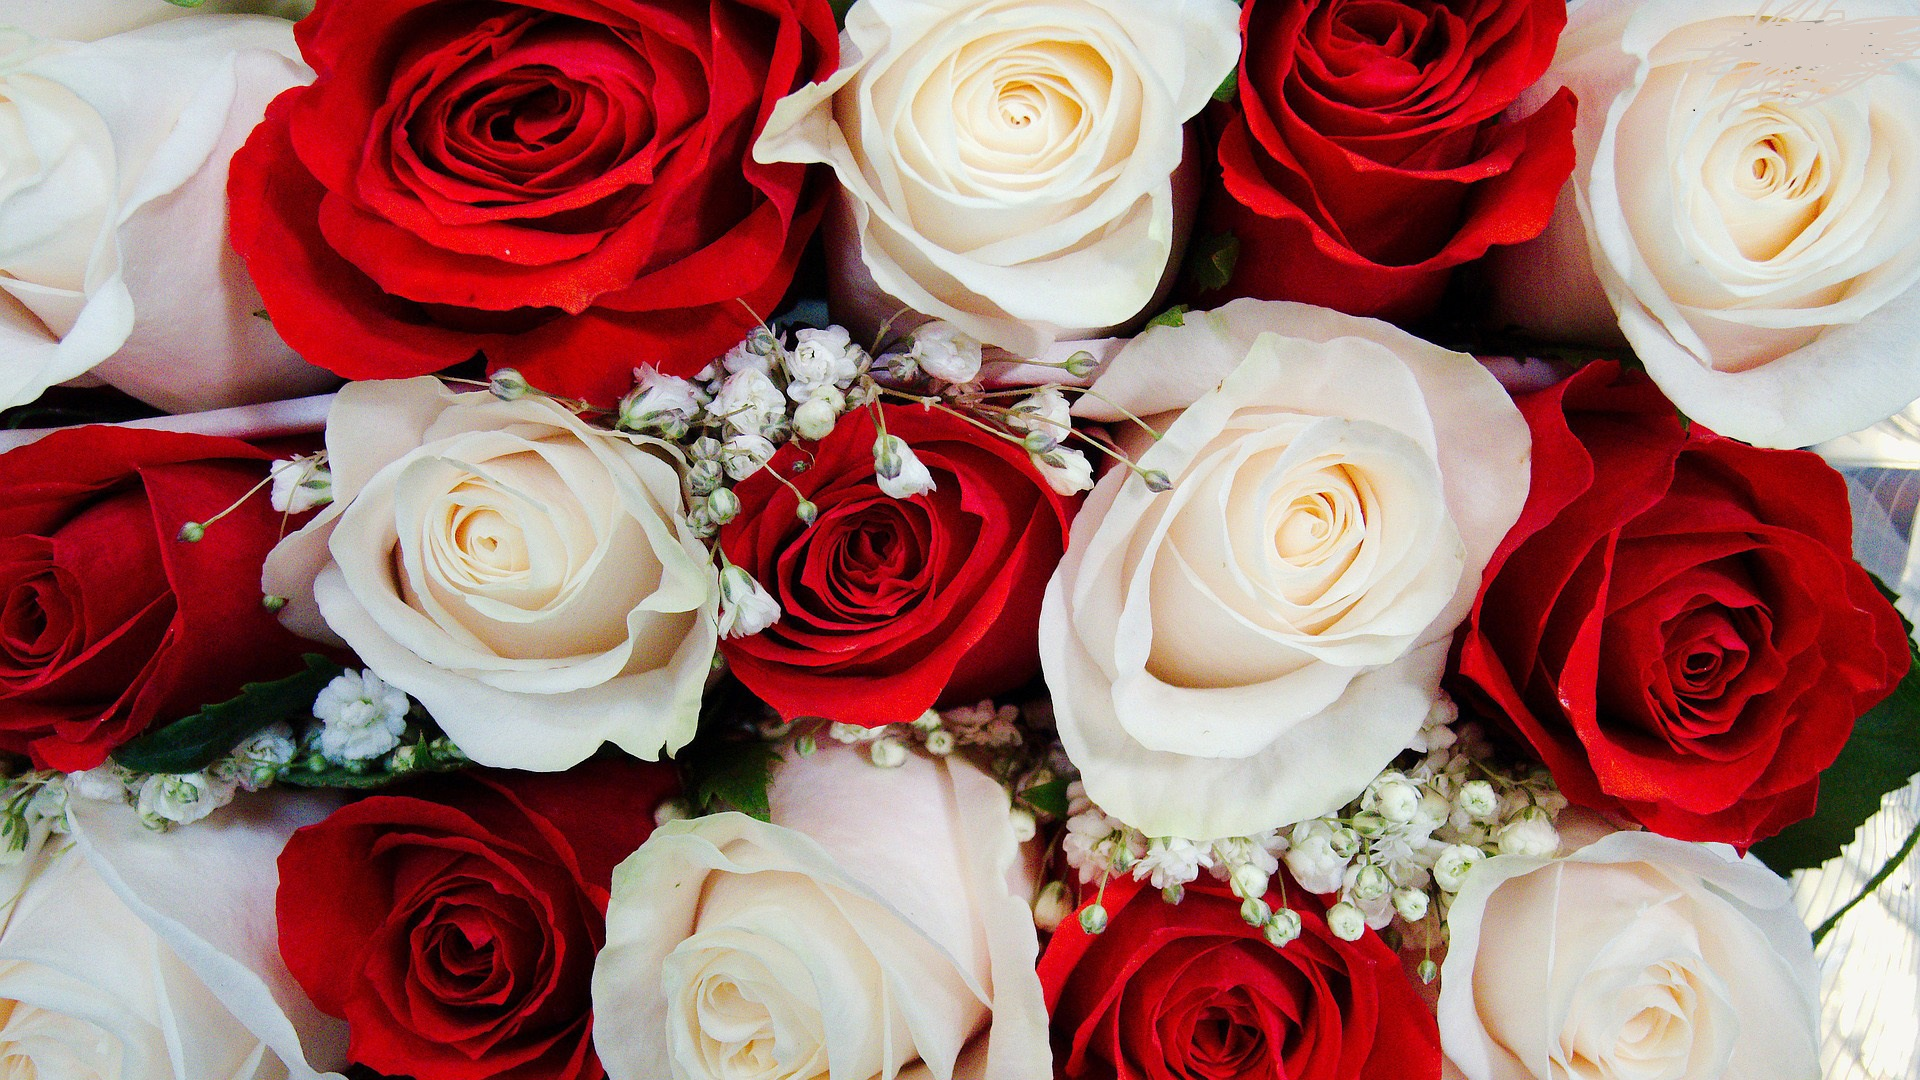 amazing-red-white-roses-free-wallpapers-hd